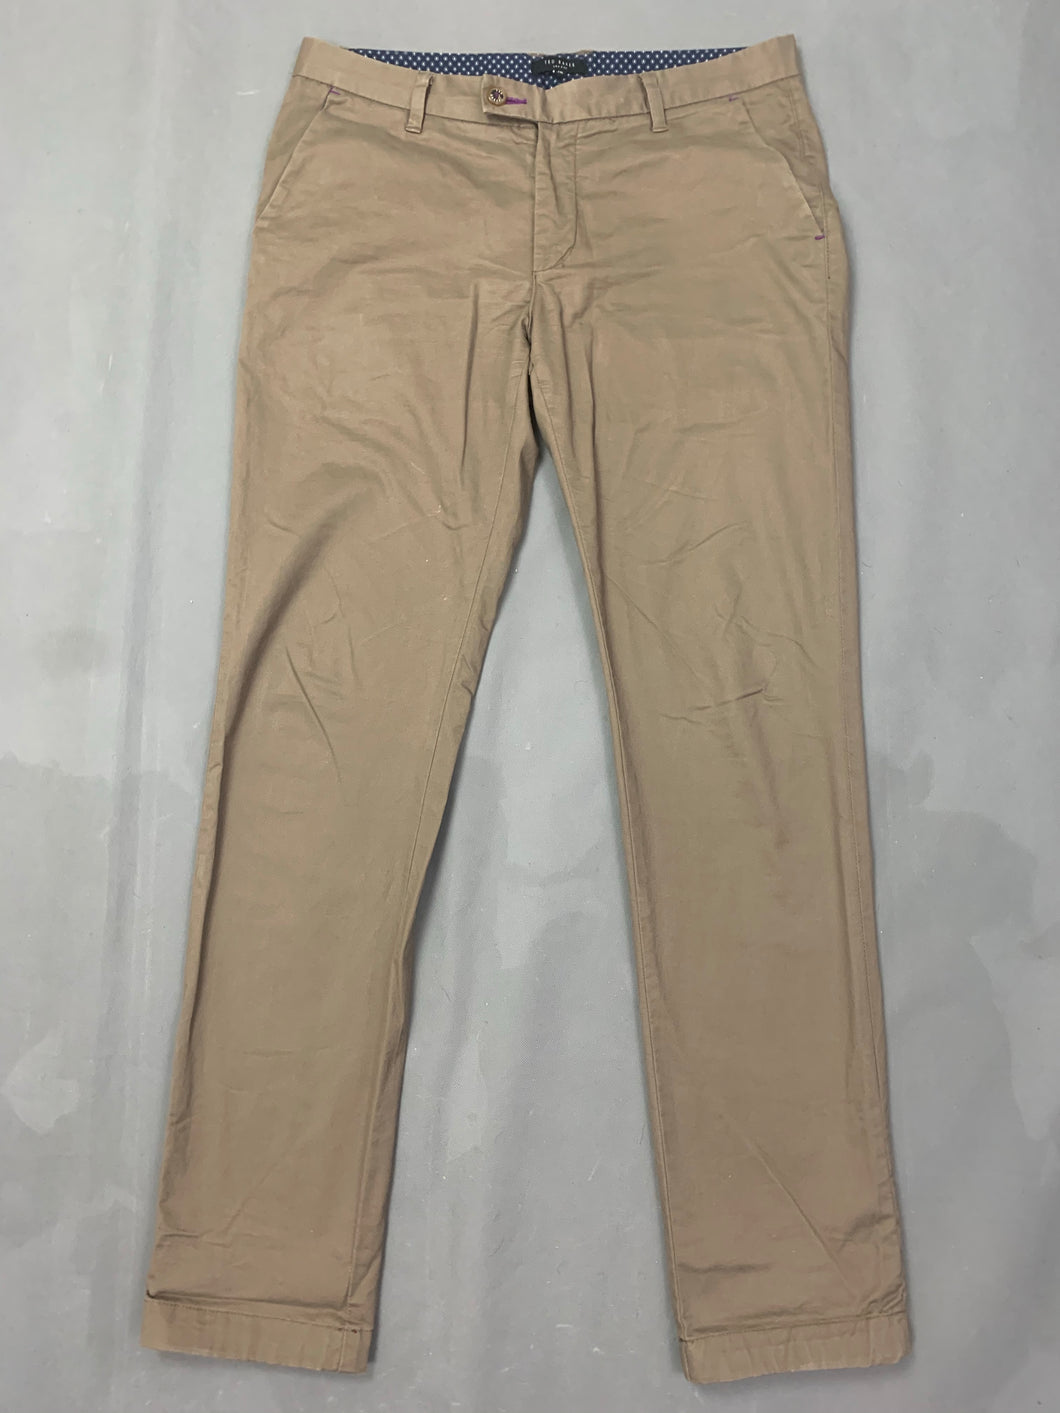 TED BAKER Mens SORCOR Tapered Leg TROUSERS Size 34L Waist 34